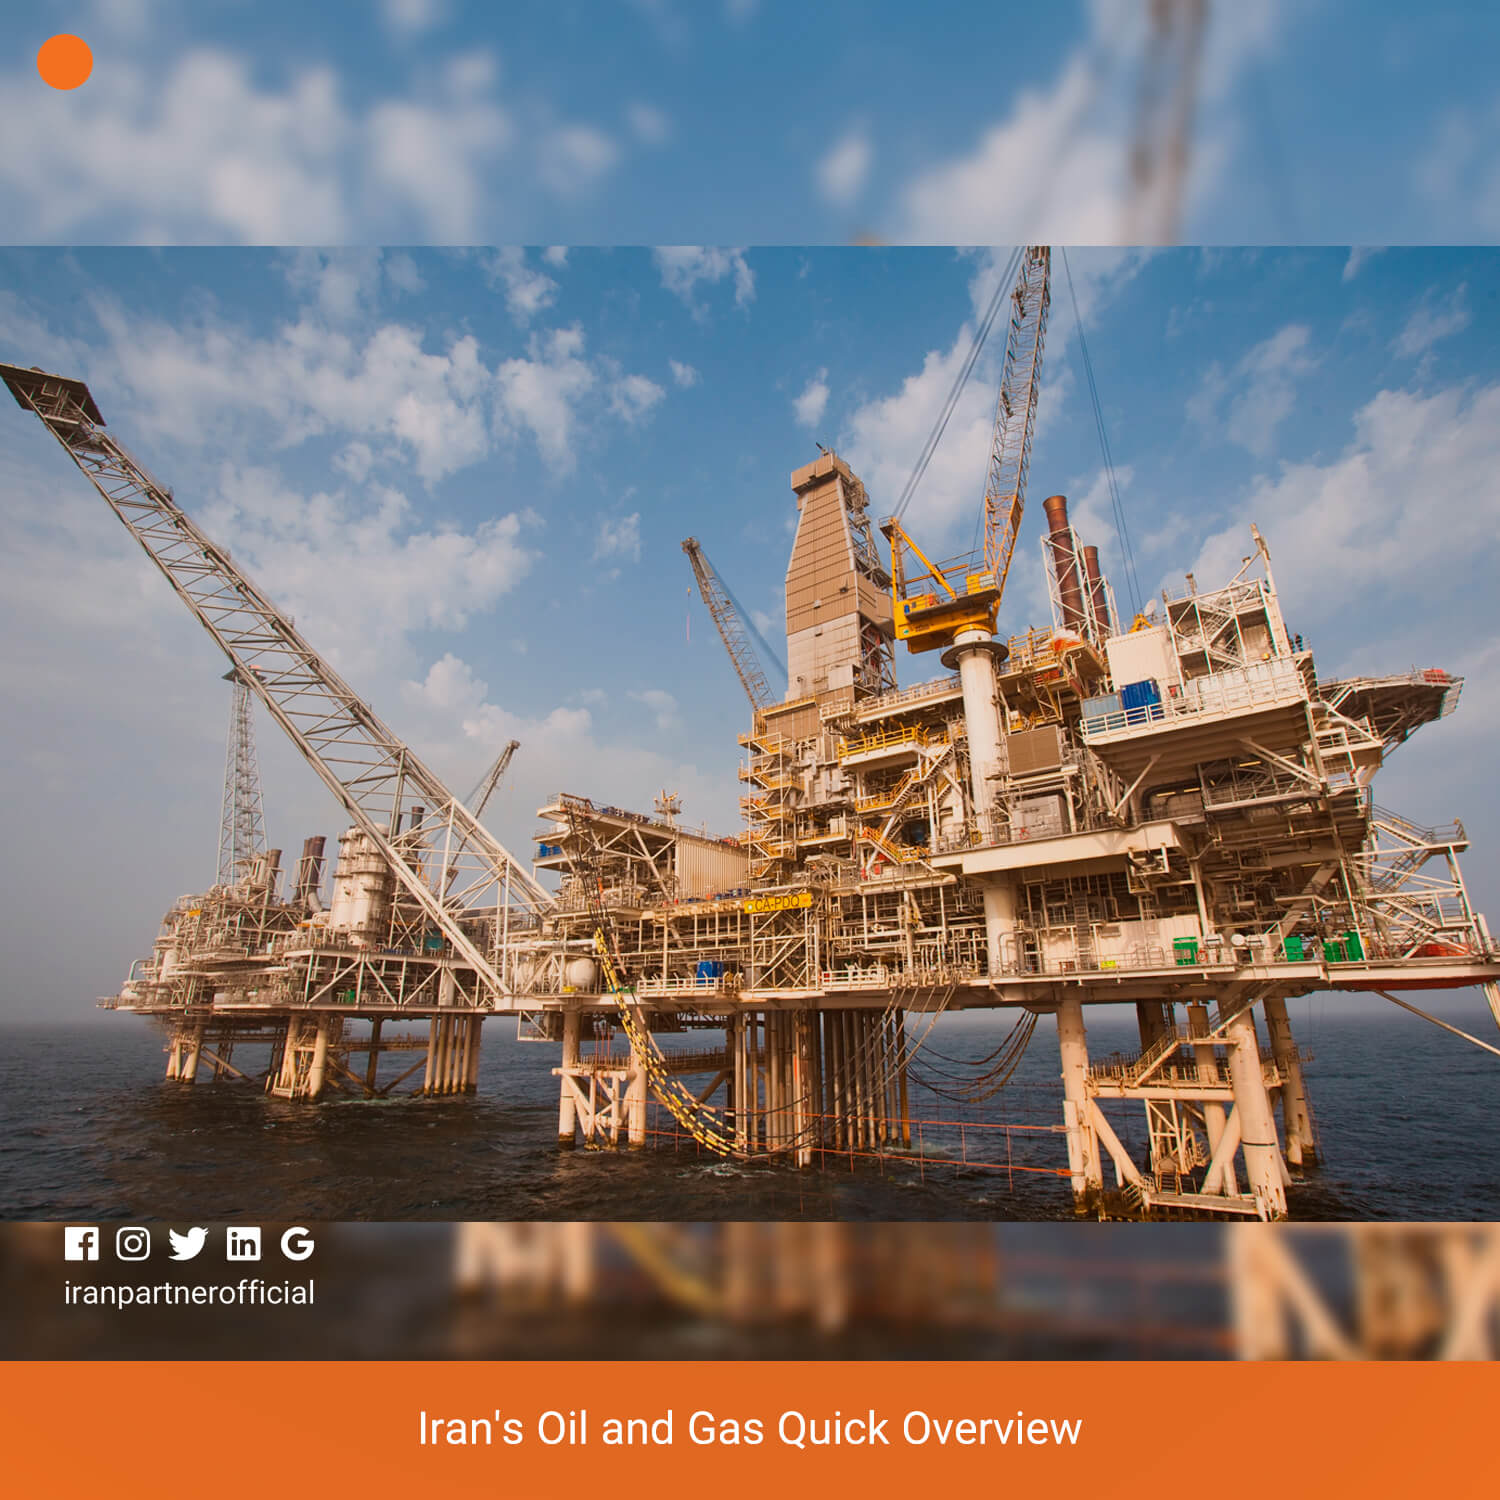 Iran's Oil and Gas Quick Overview